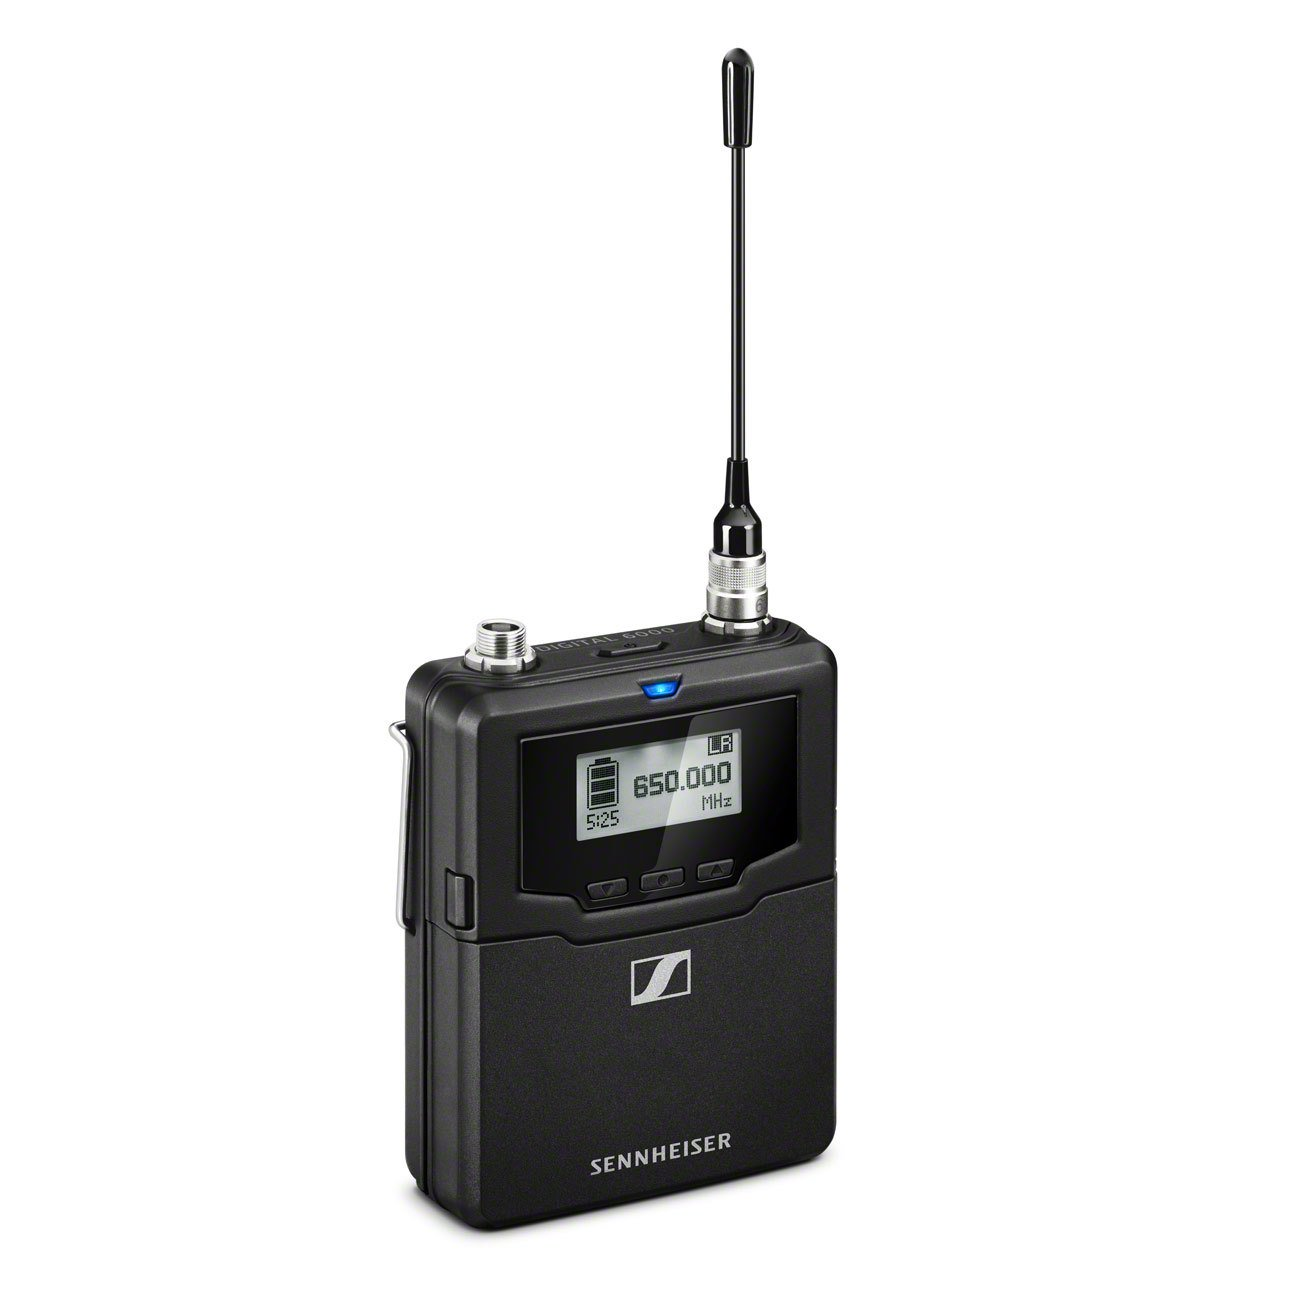 Bodypack Transmitter, Black